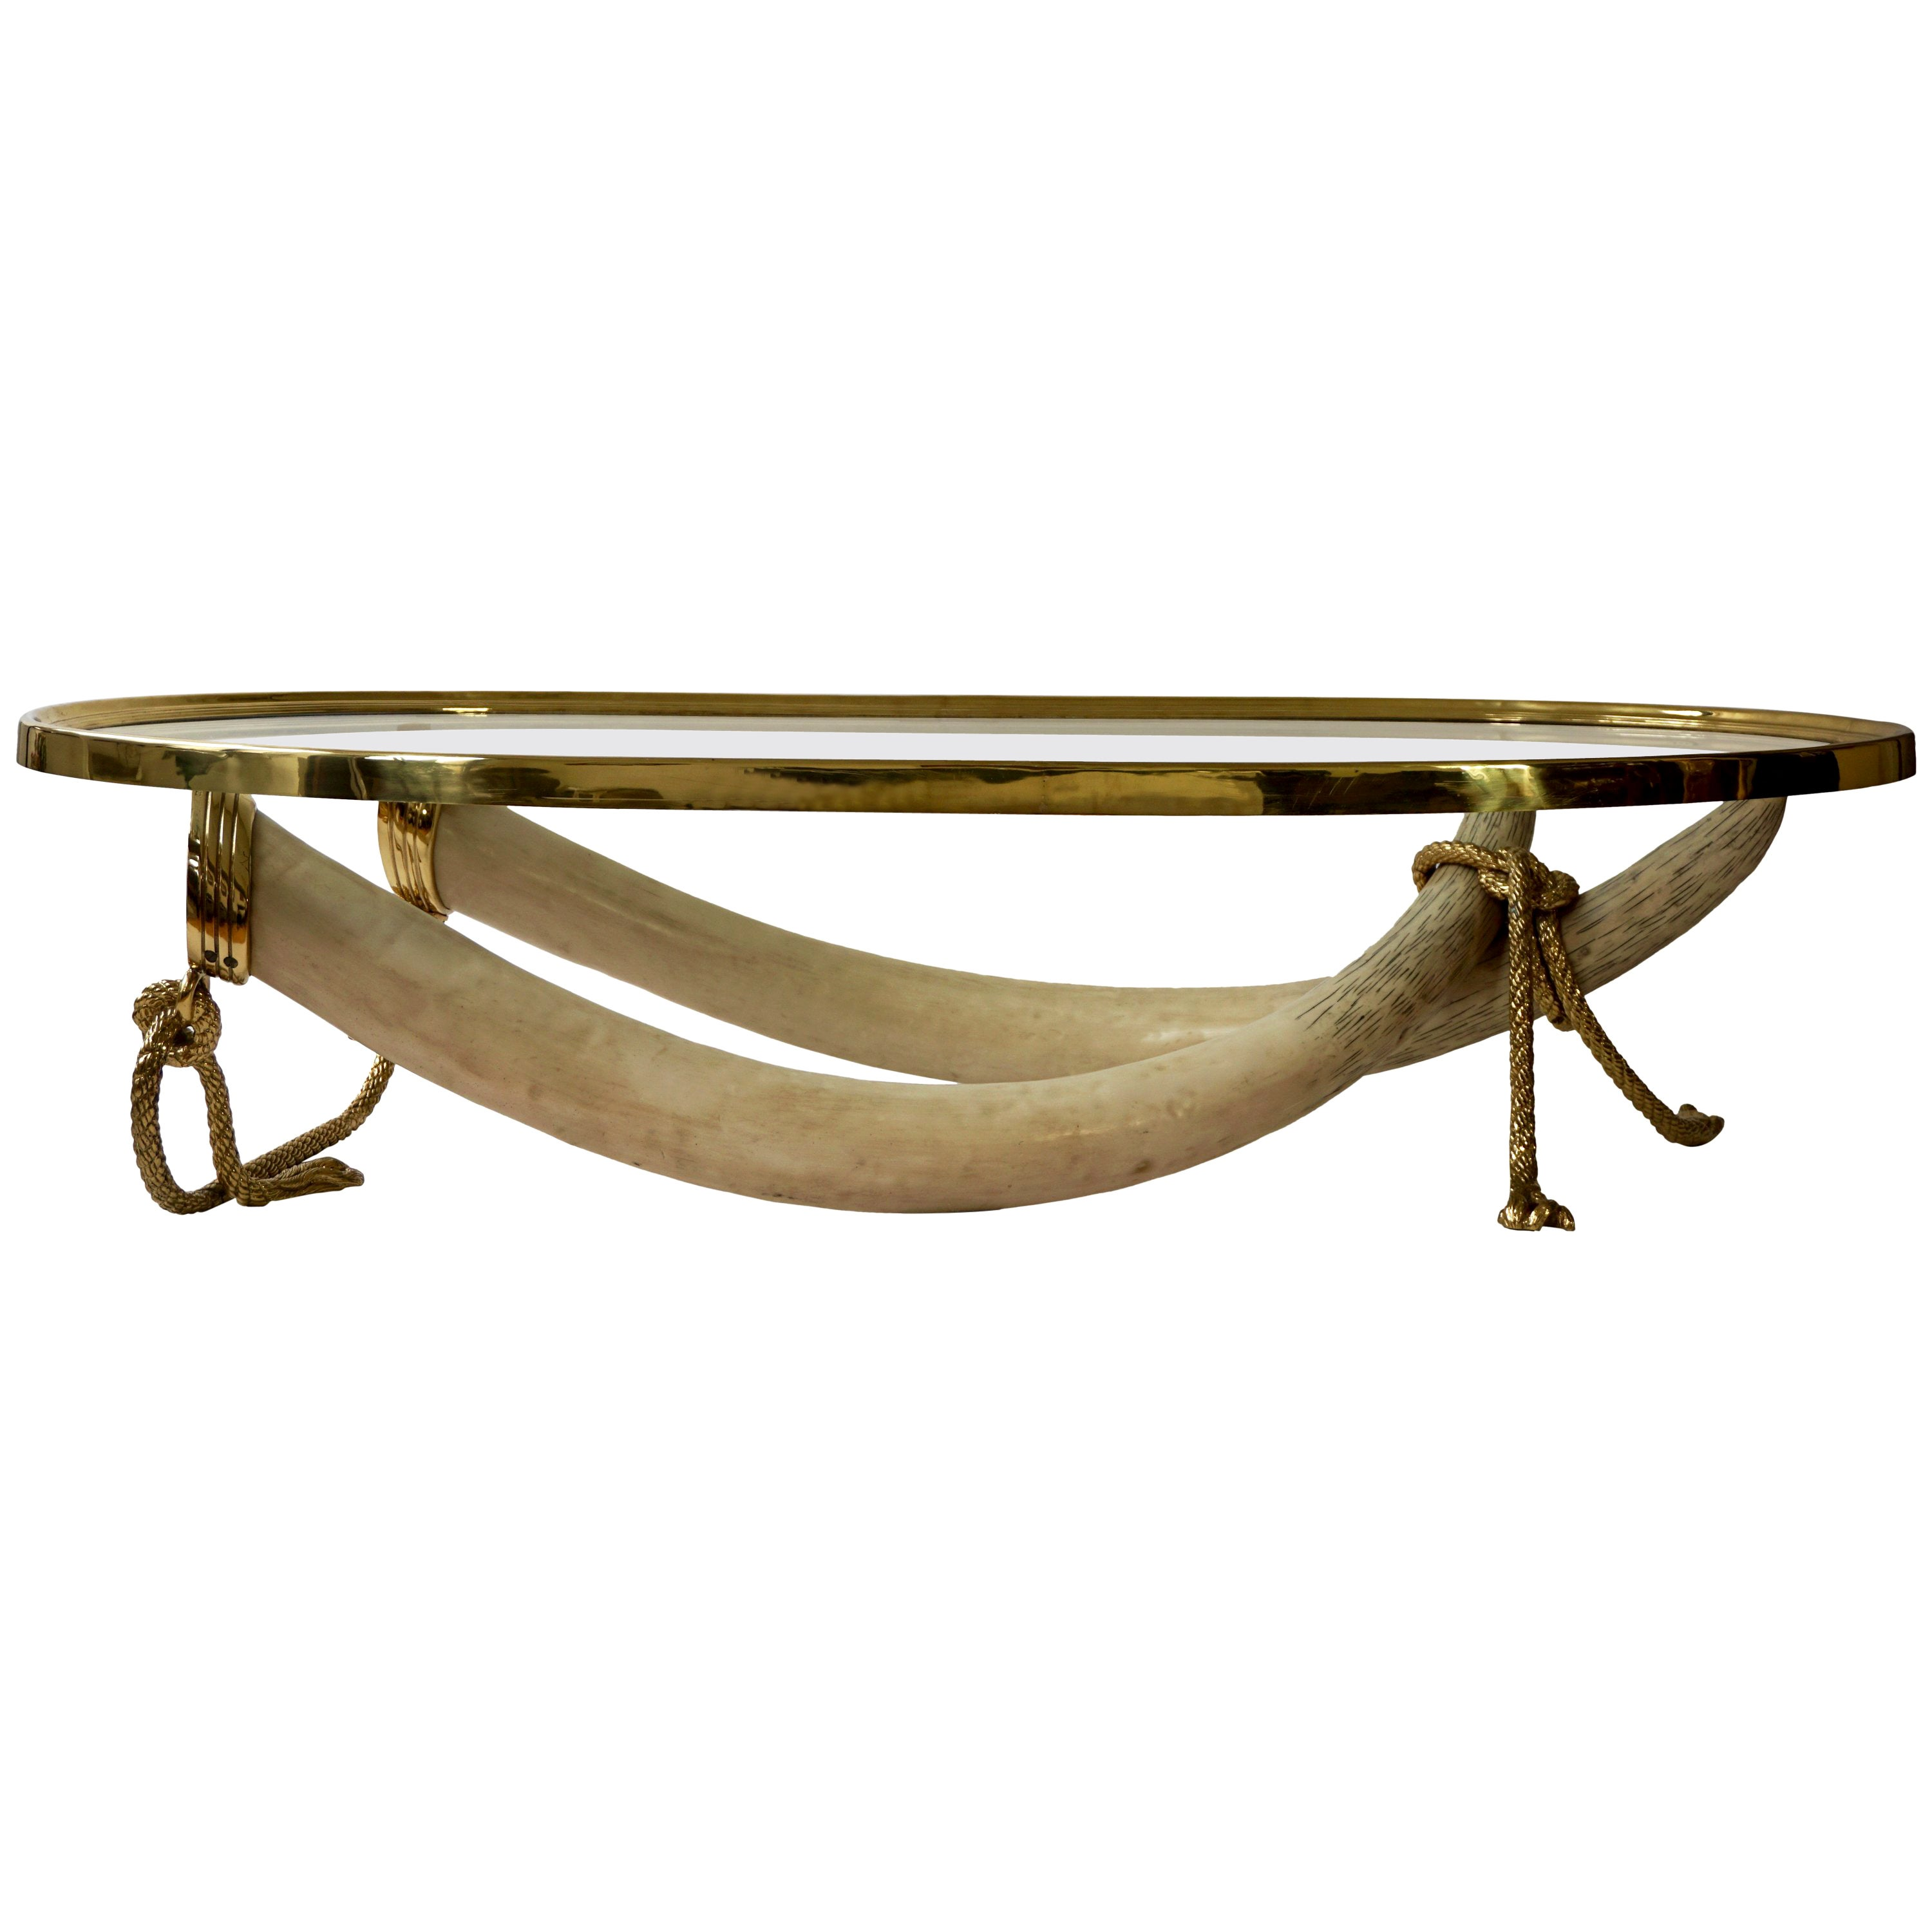 Glass and Brass Elephant Tusk Base Coffee Table by Valenti, 1970s